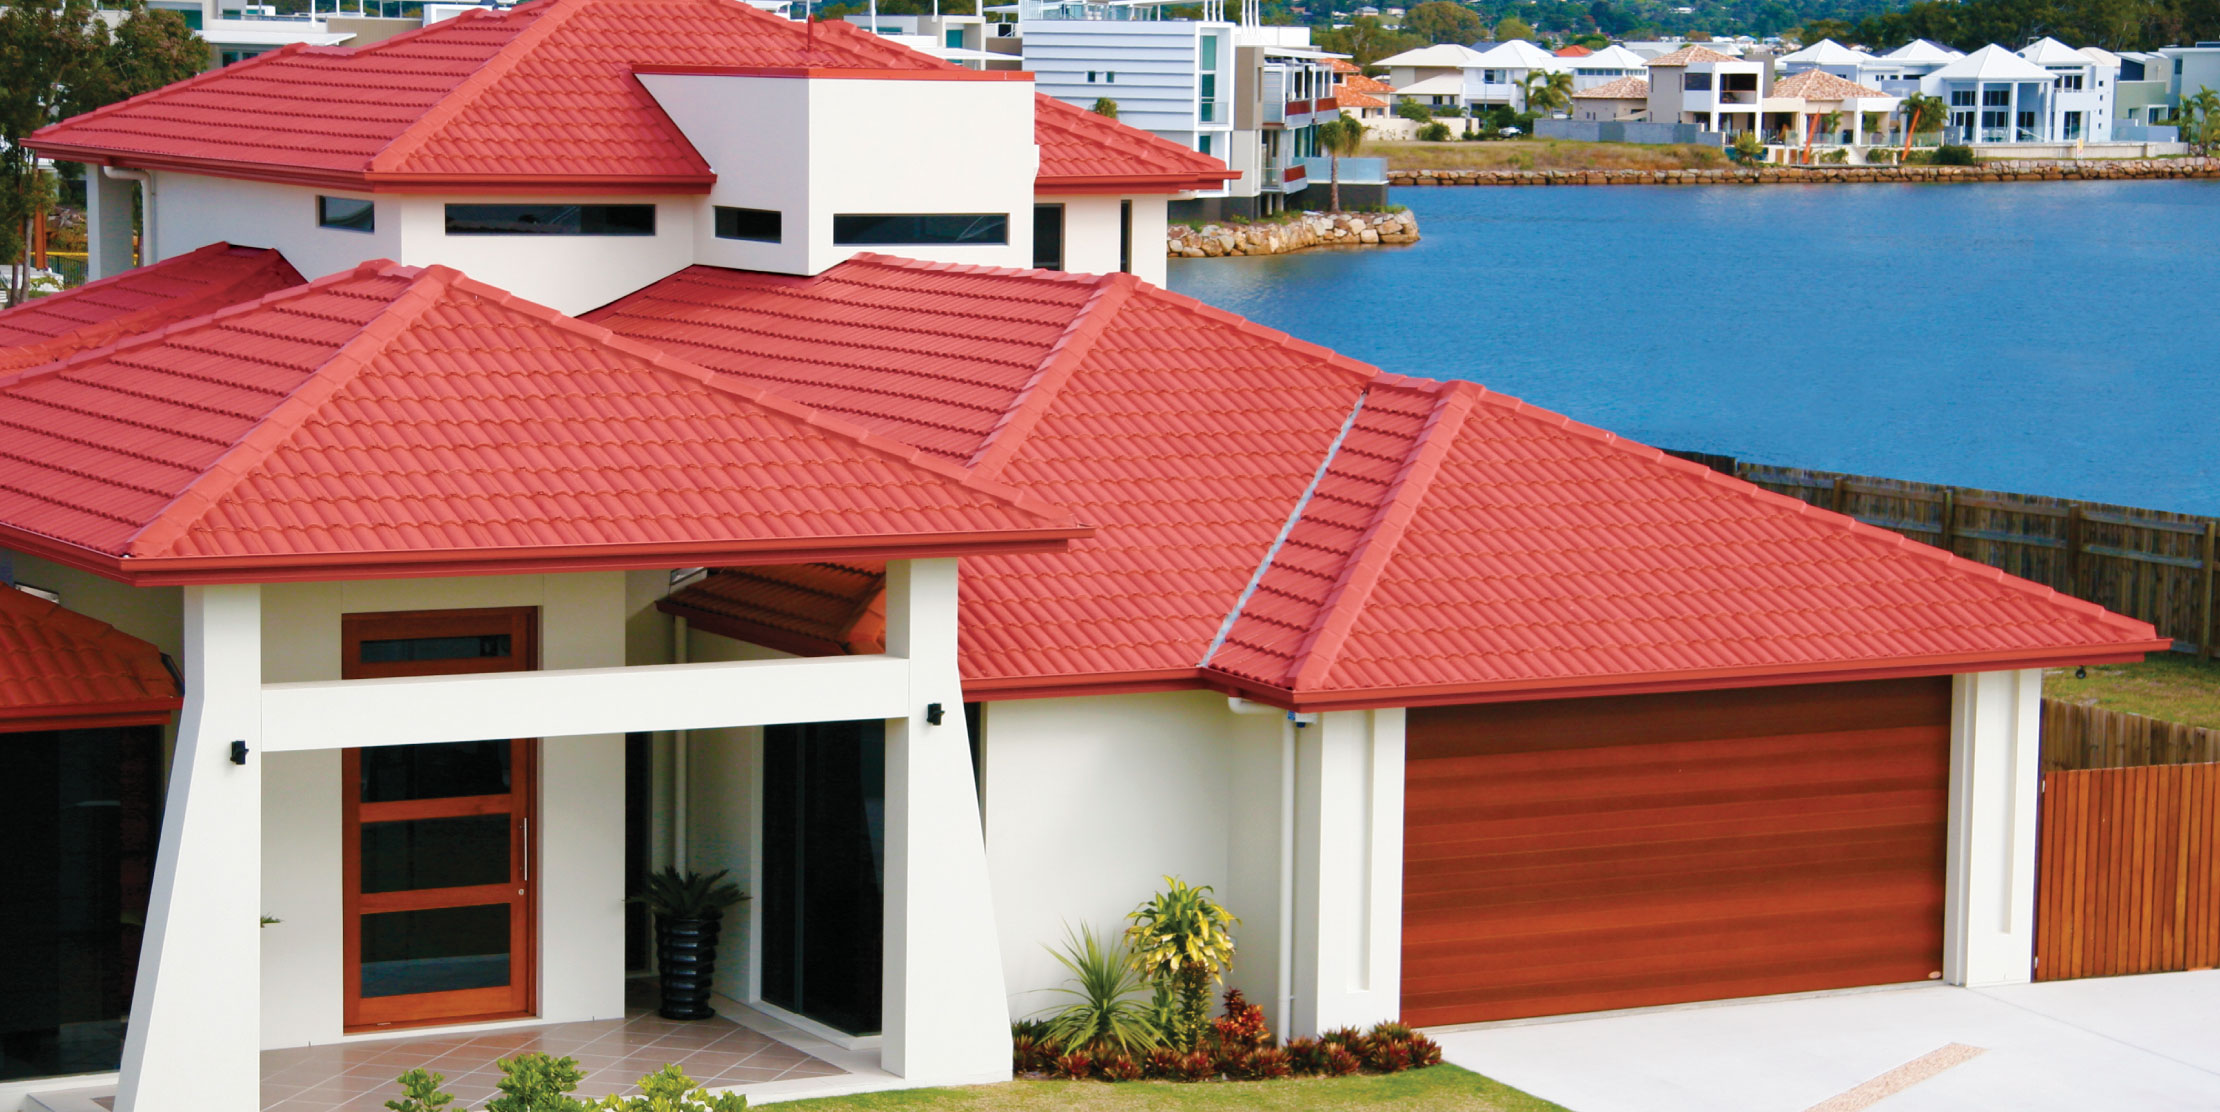 Protecting And Maintaining Your Roof